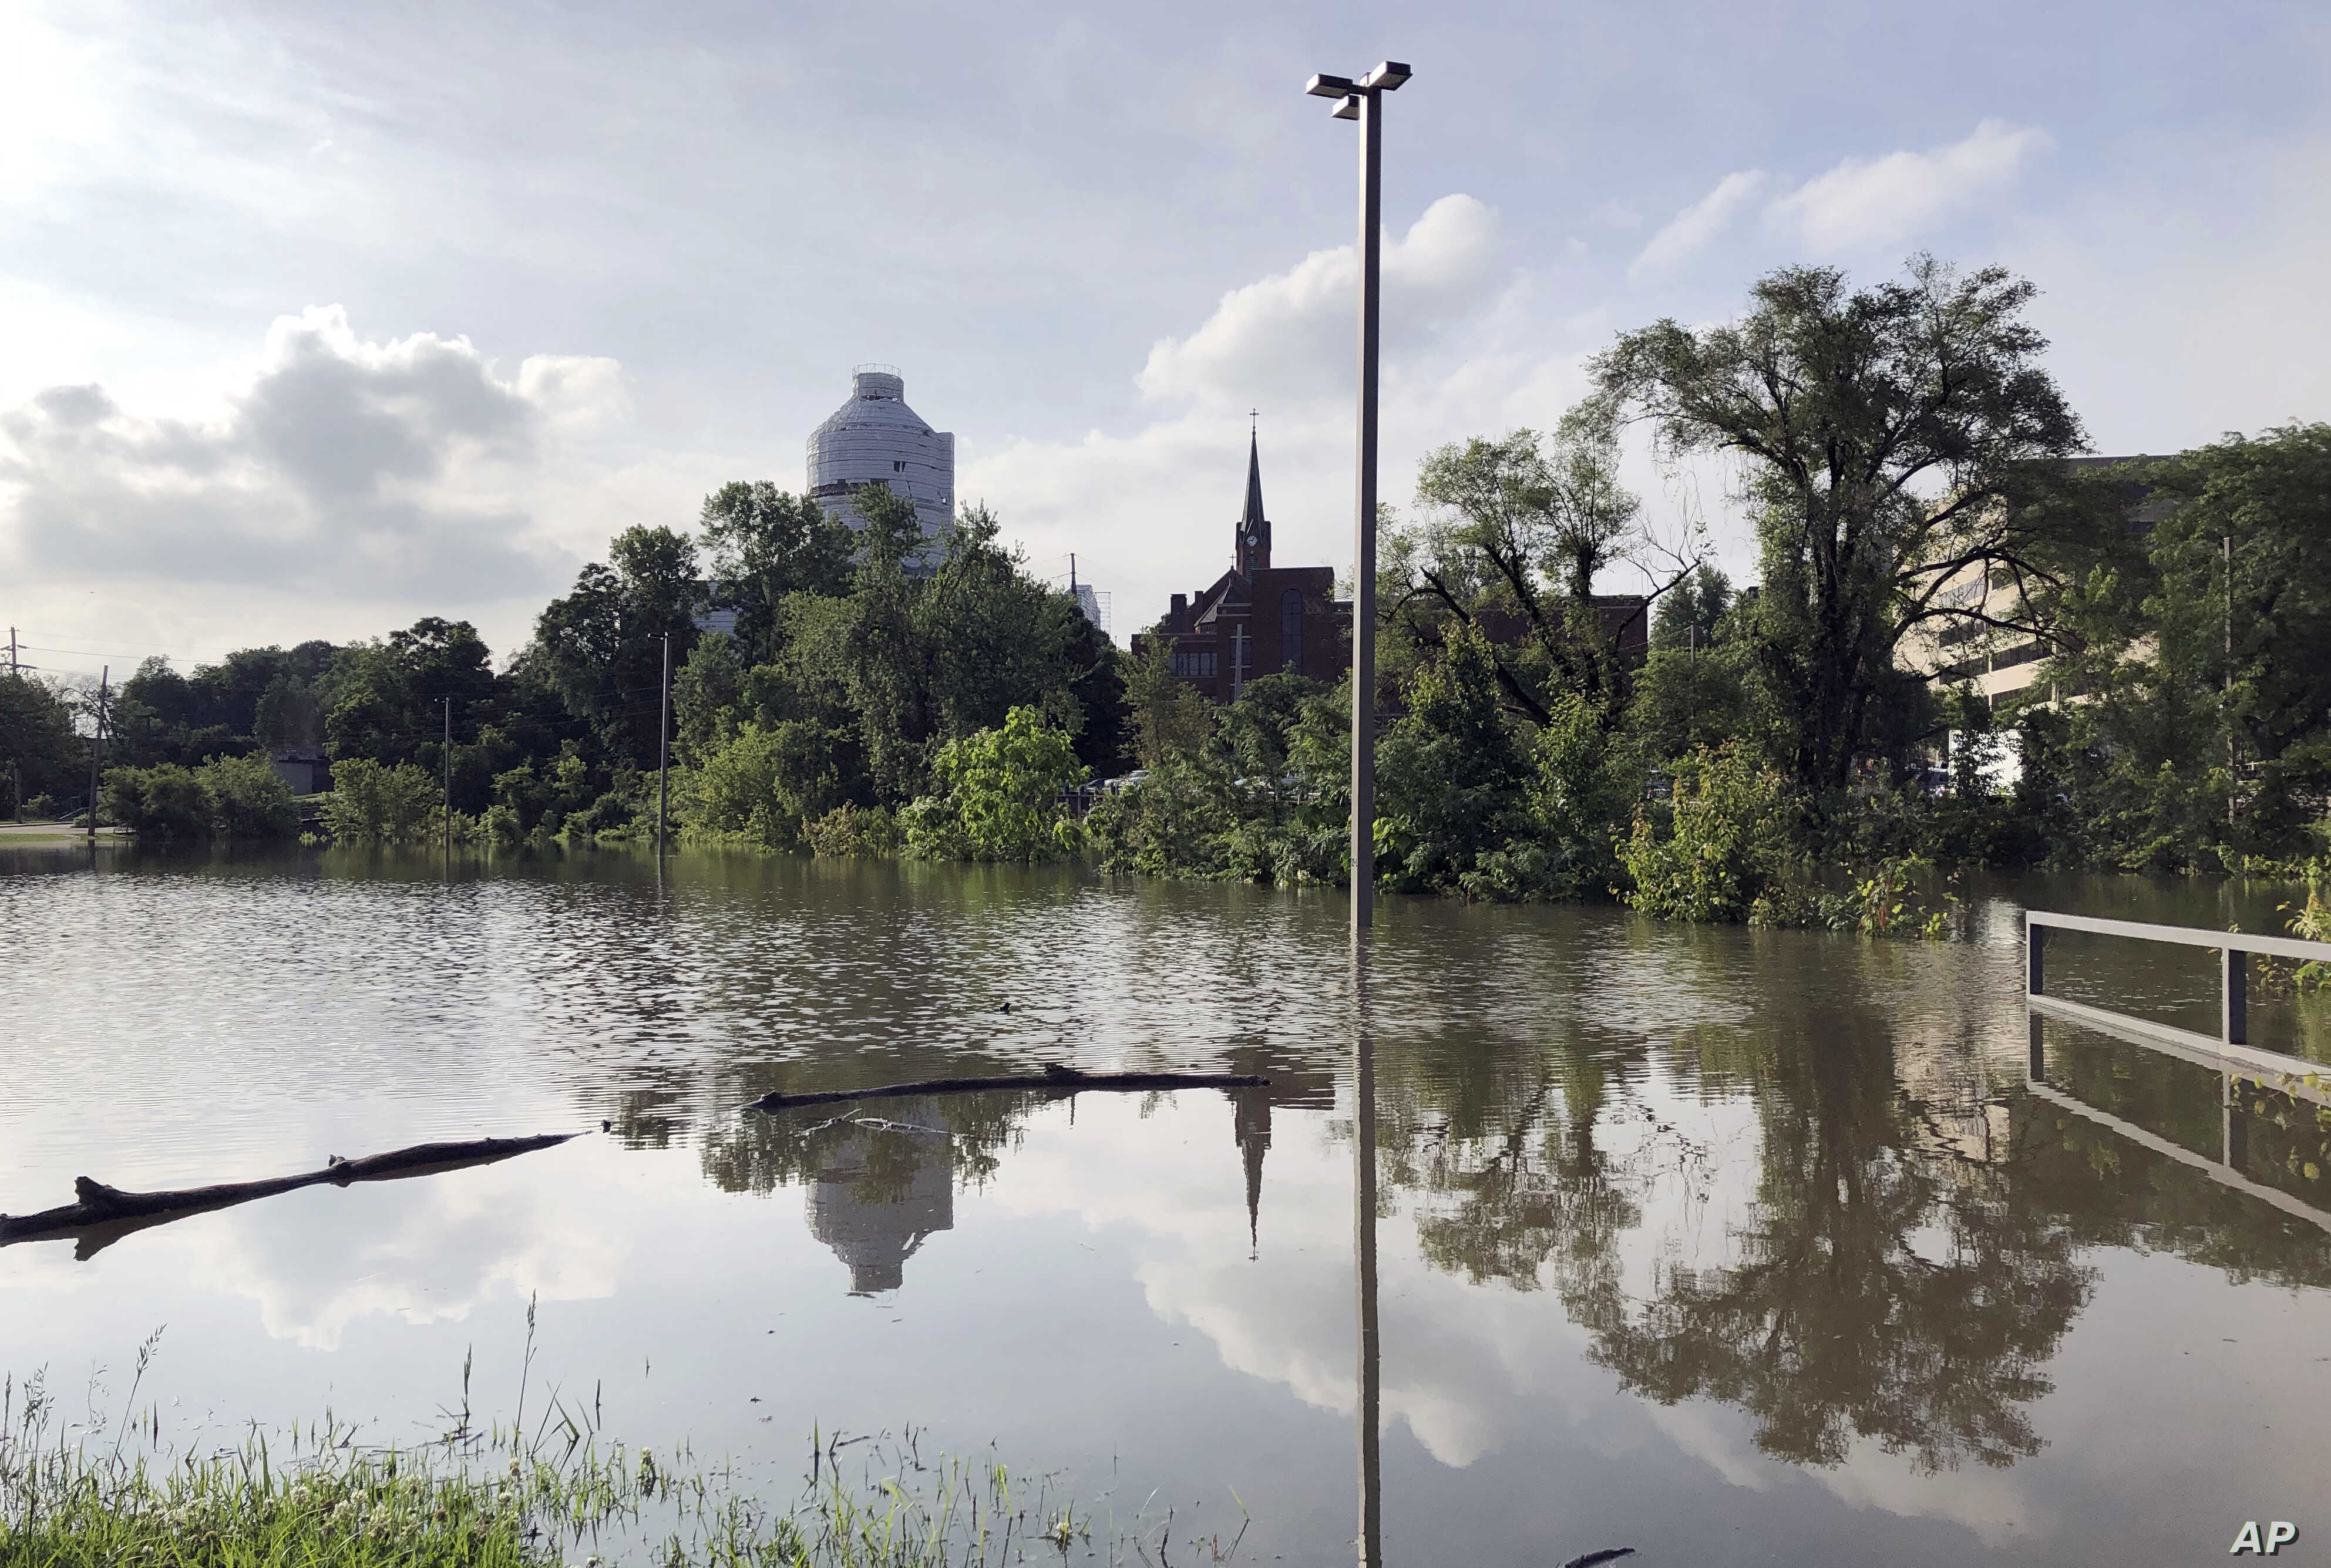 Nearly 400 Missouri Roads Closed by Flooding | Voice of